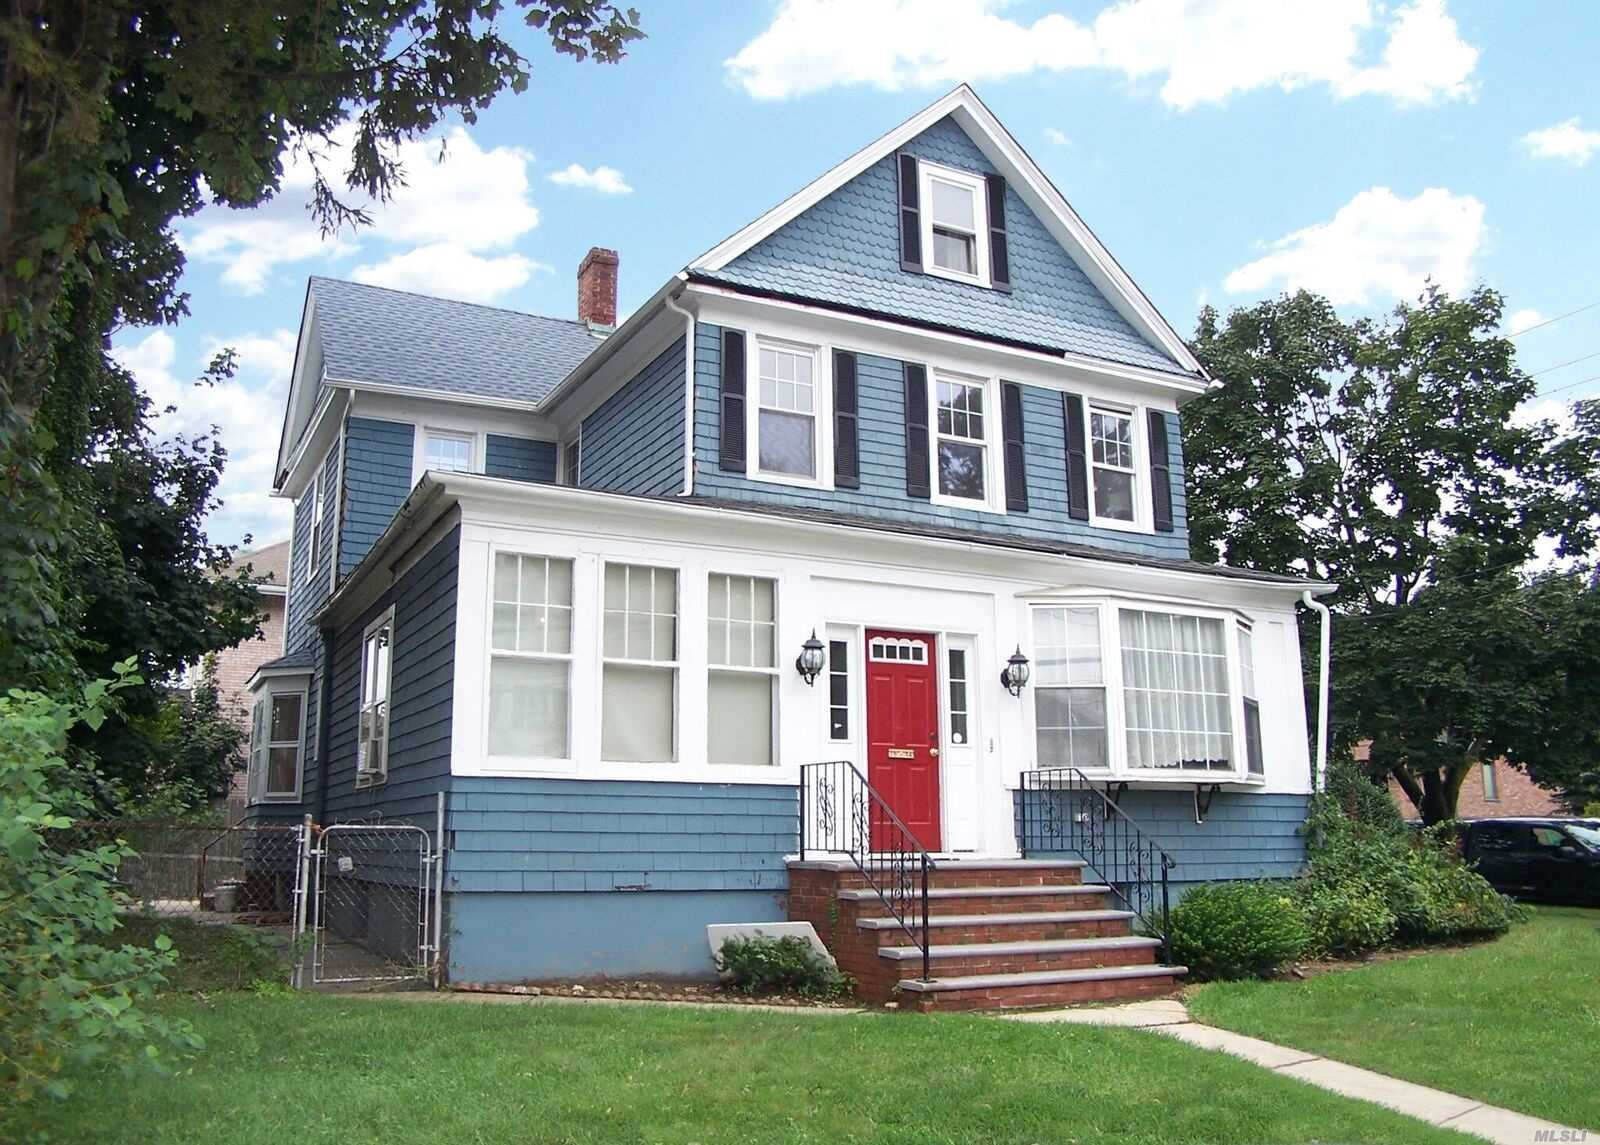 Location, Location, Location!!! Charming House In The Heart Of Whitestone. Large Fully Fenced Corner Property. Spacious Living rooms, High Ceilings, Large Bedrooms & Hardwood Floors. New Kitchen & Updated Bath (2nd Floor) & Roof. Spacious Closets & Walk-Up Attic. Full Basement With Bar & Separate Entrance. Great School District. Conveniently Located To Long Island City & Flushing Bus, Cross Island Expressway & Whitestone Bridge ( View From 3rd Floor). Perfect For Extended Family Or Investment!